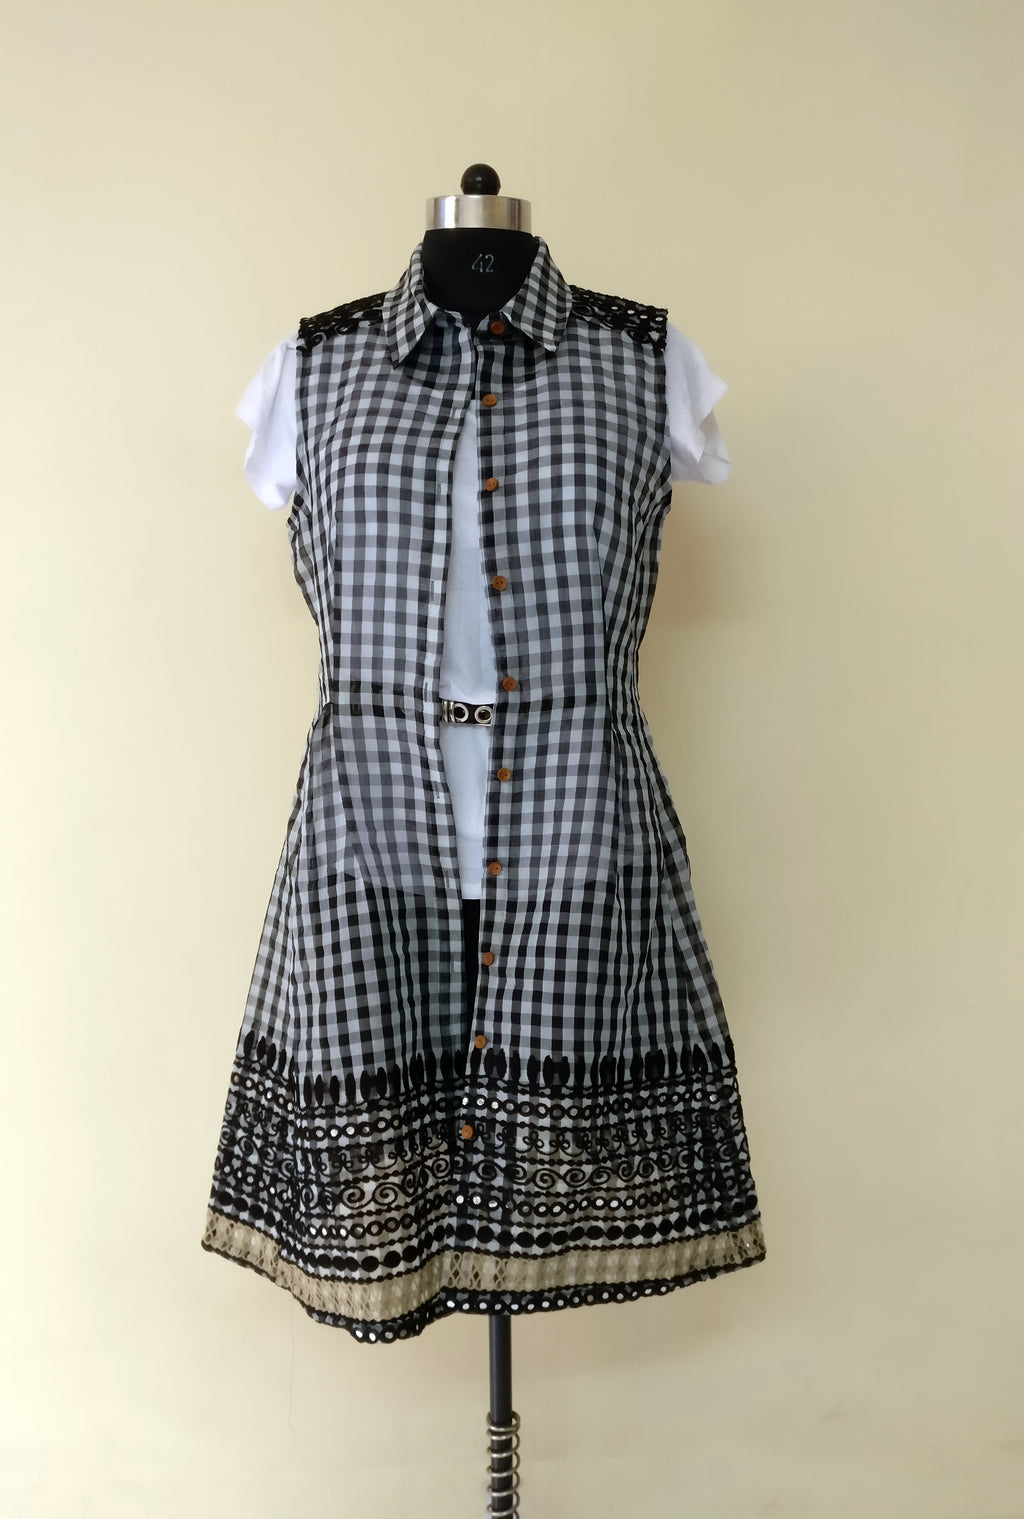 MIRCHI KOMACHI black gingham Chanderi Silk Shirt Dress with Indian traditional handicraft details is worn as an outer, a jacket. Gorgeous silhouette, cute, a signature item. Shop online!